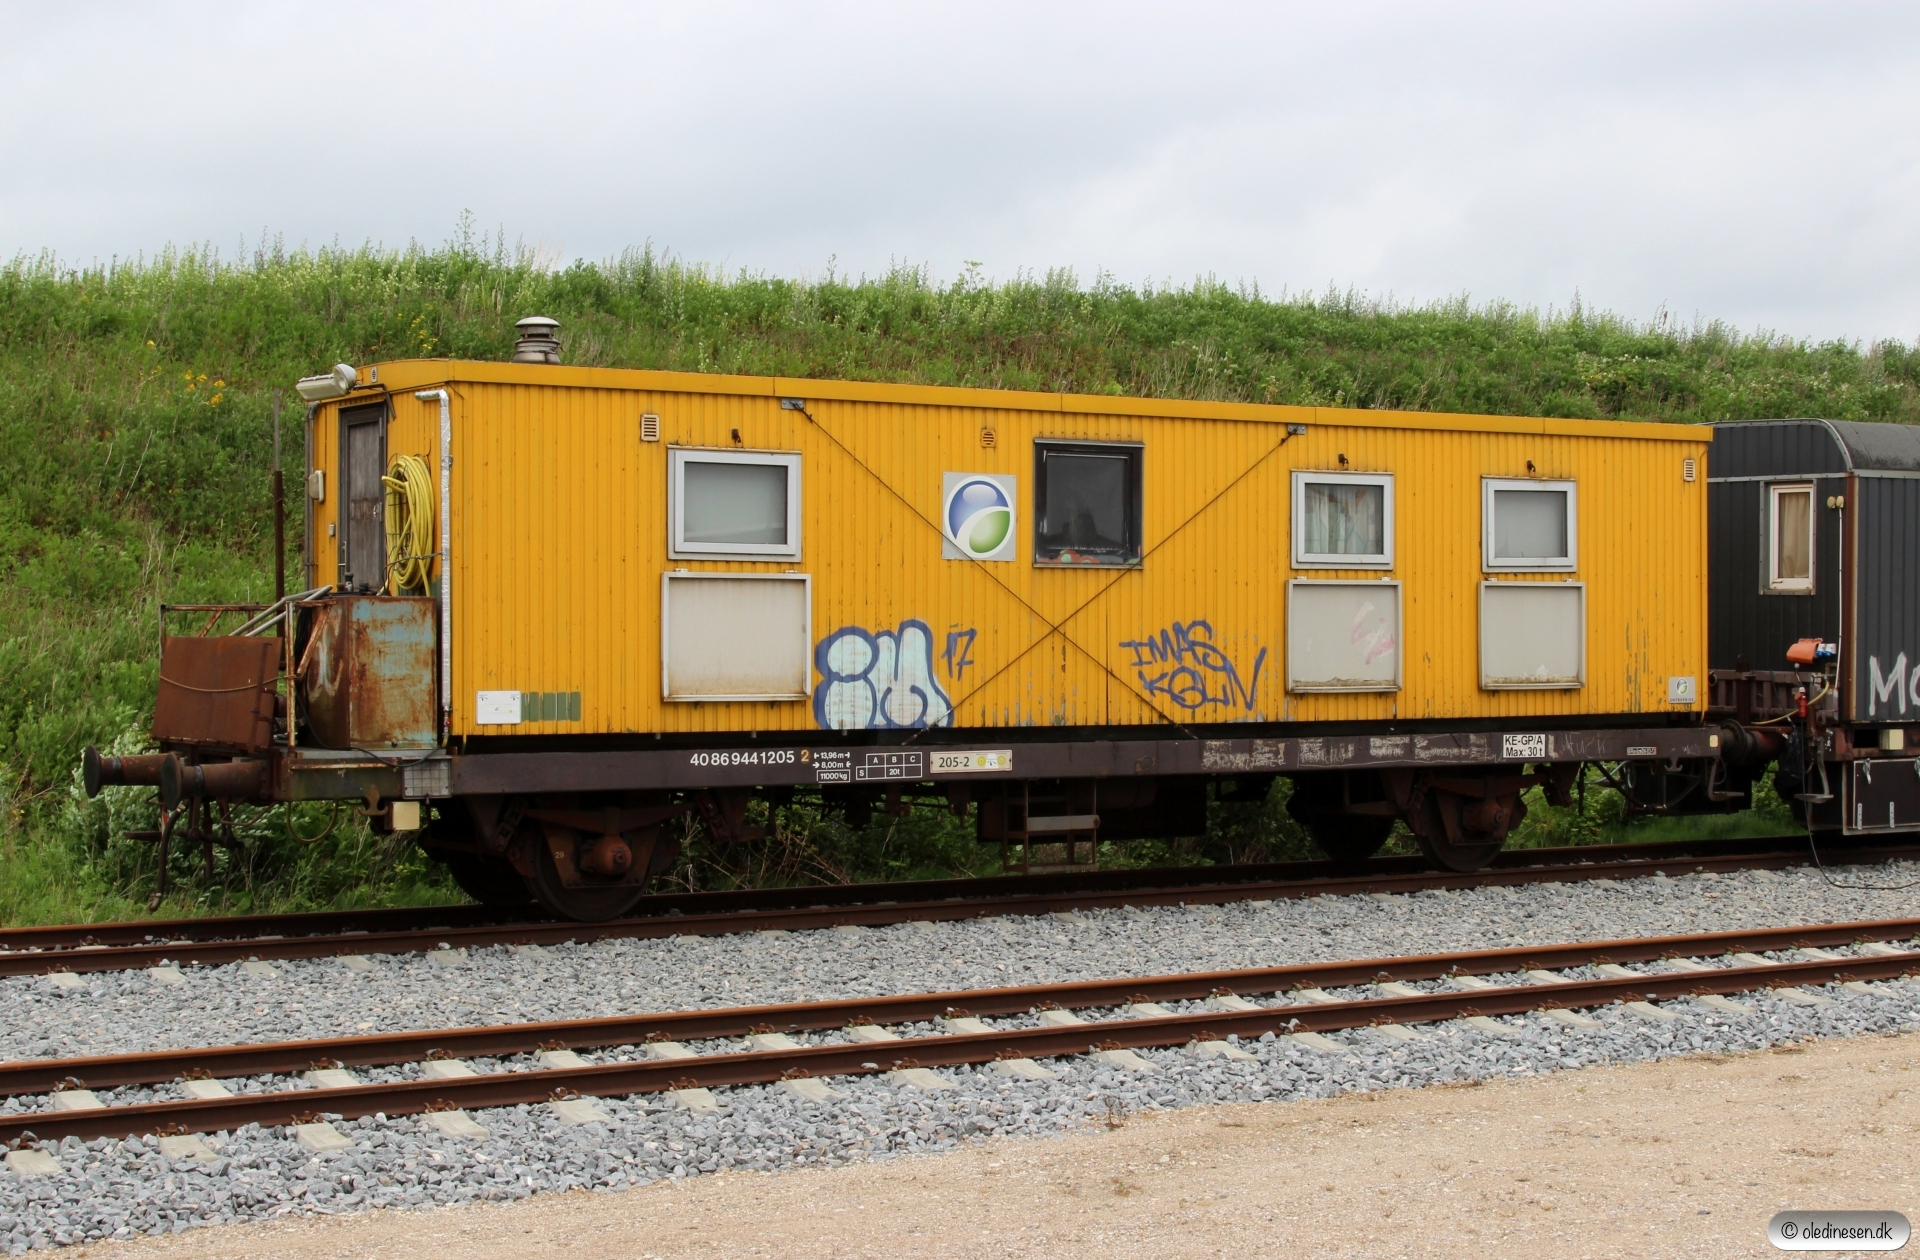 ENT 40 86 944 1 205-2. Odense 24.06.2017.